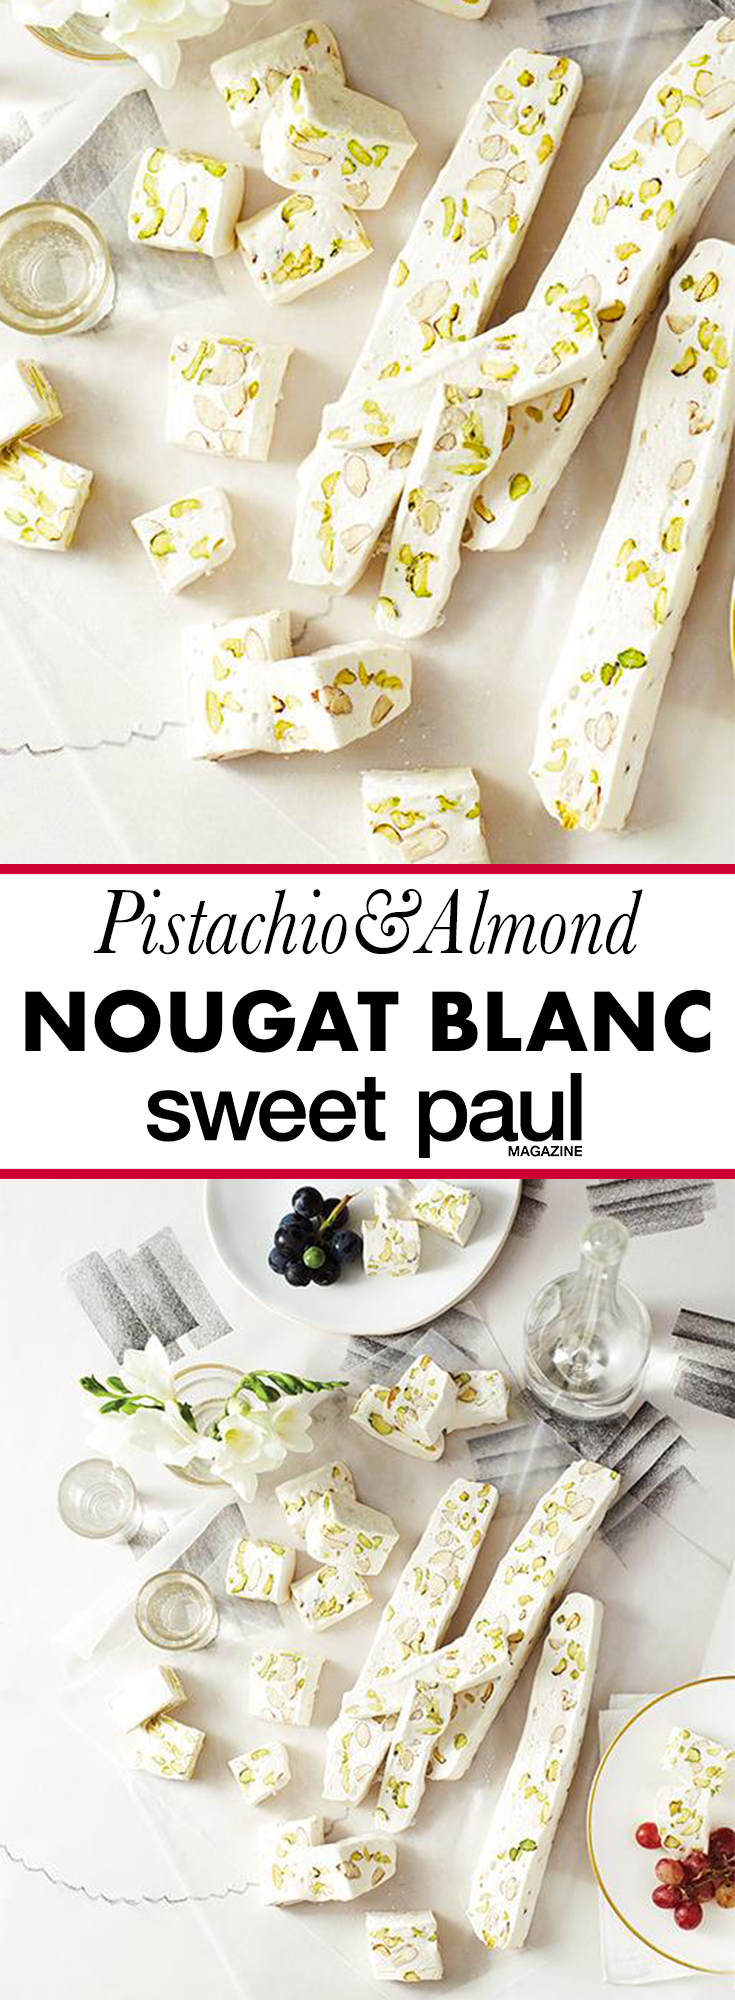 Photo of Nougat Blanc with Pistachios & Almonds | Sweet Paul Magazine